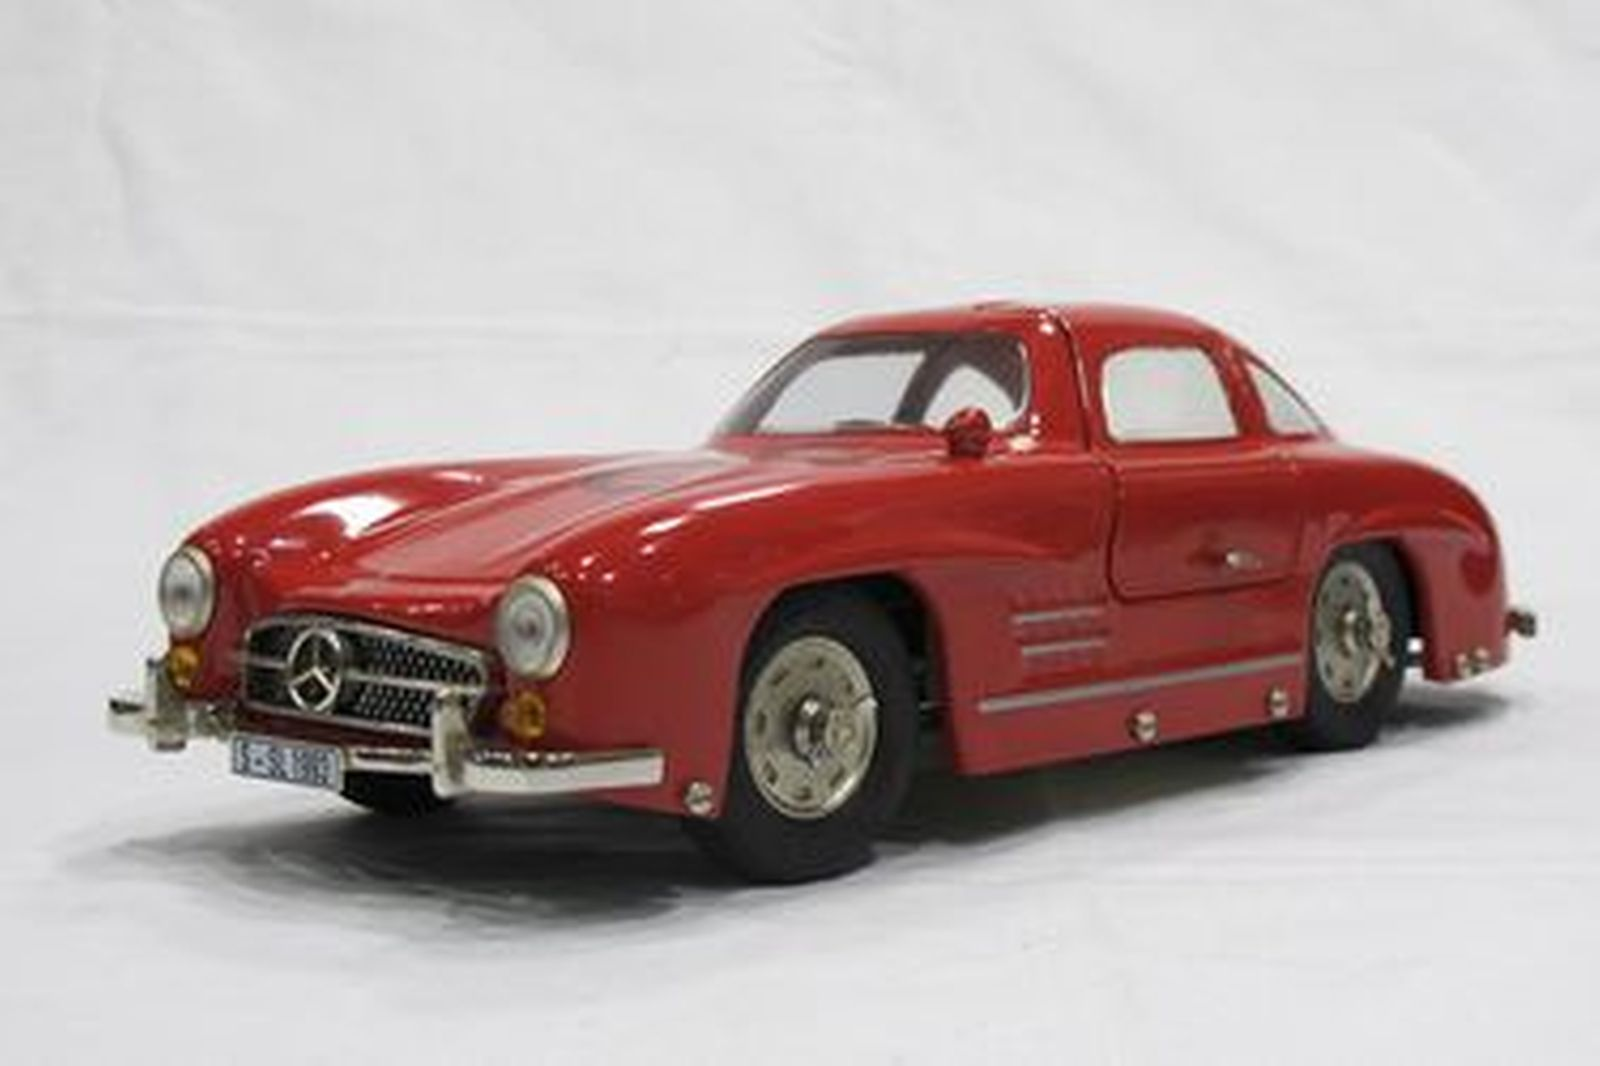 Model Car - 1 x Marklin Clockwork Tin-plate Mercedes-Benz 300SL Gullwing (#81092)(1:16 Scale)